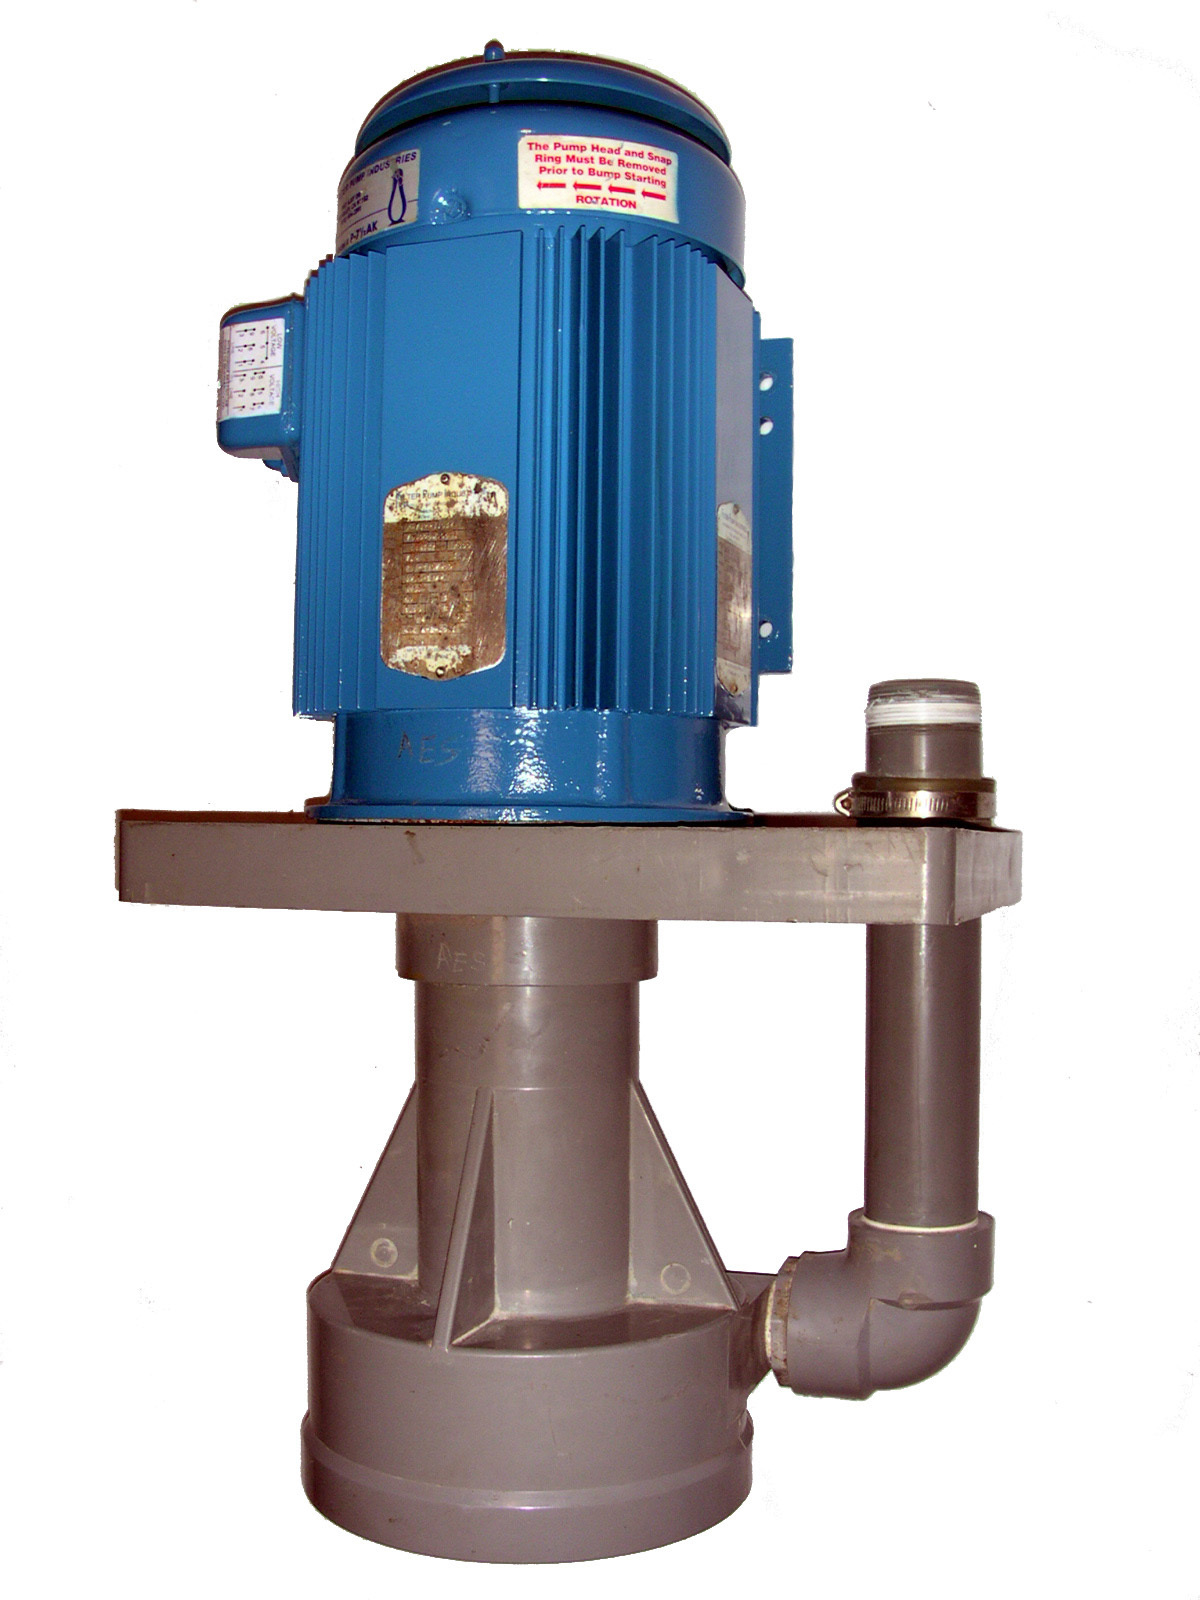 BALDOR 35H693-82 Pump used for sale price #124531 > buy from CAE